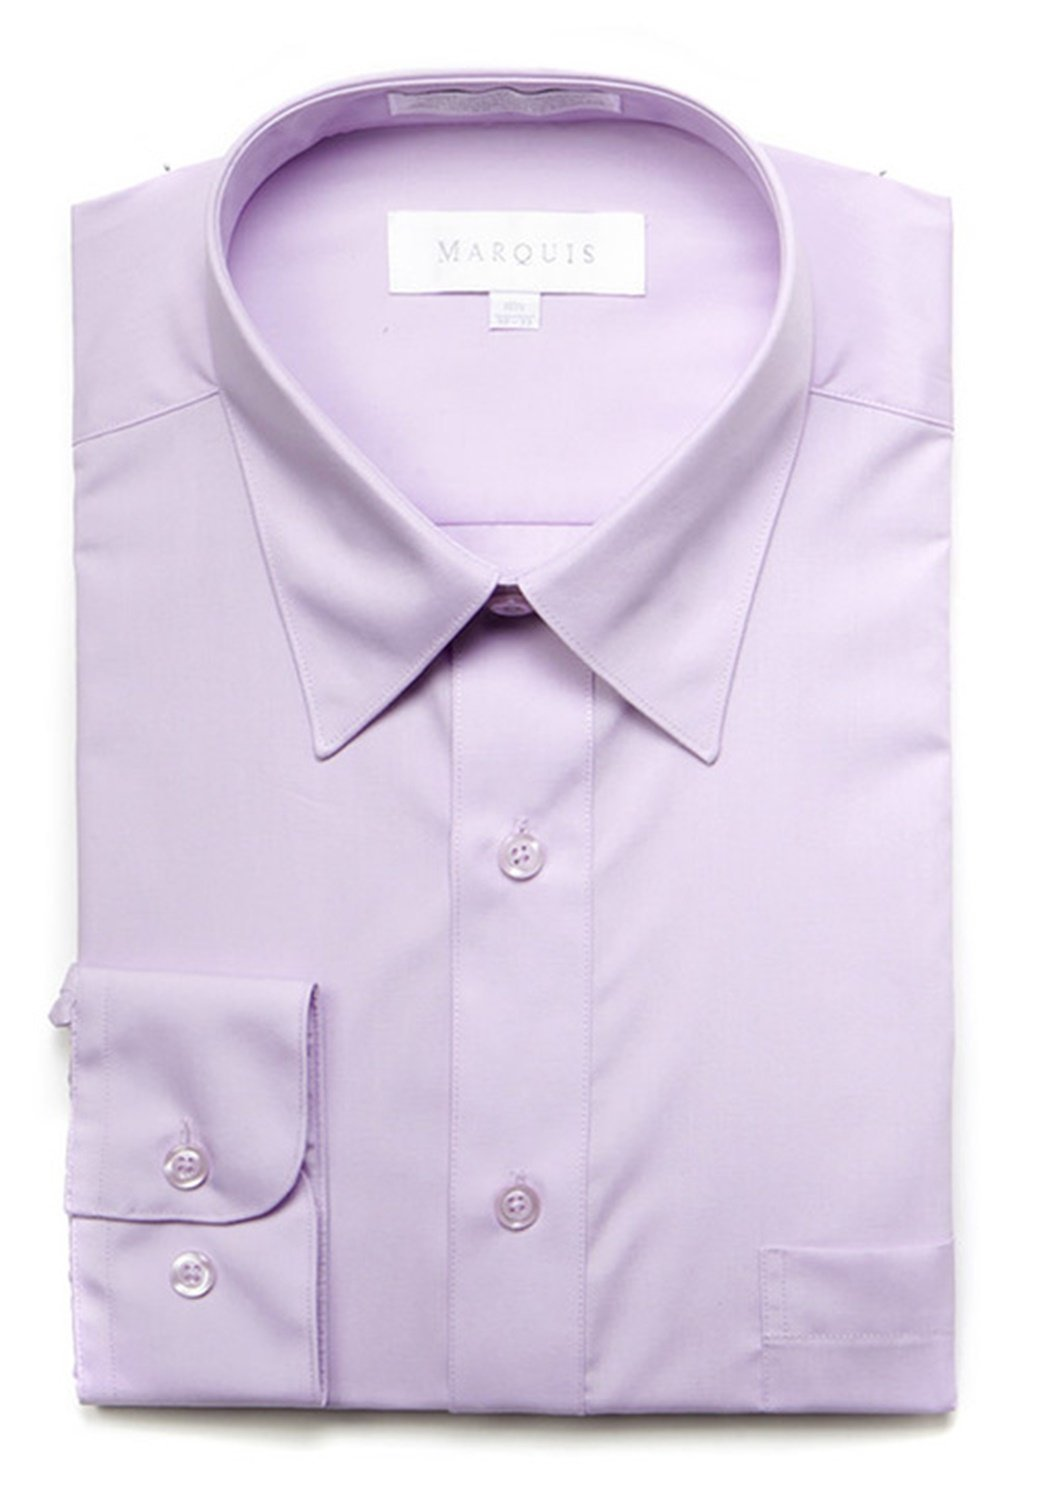 Primary image for Marquis Men's Lilac Long Sleeve Regular Fit Dress Shirt